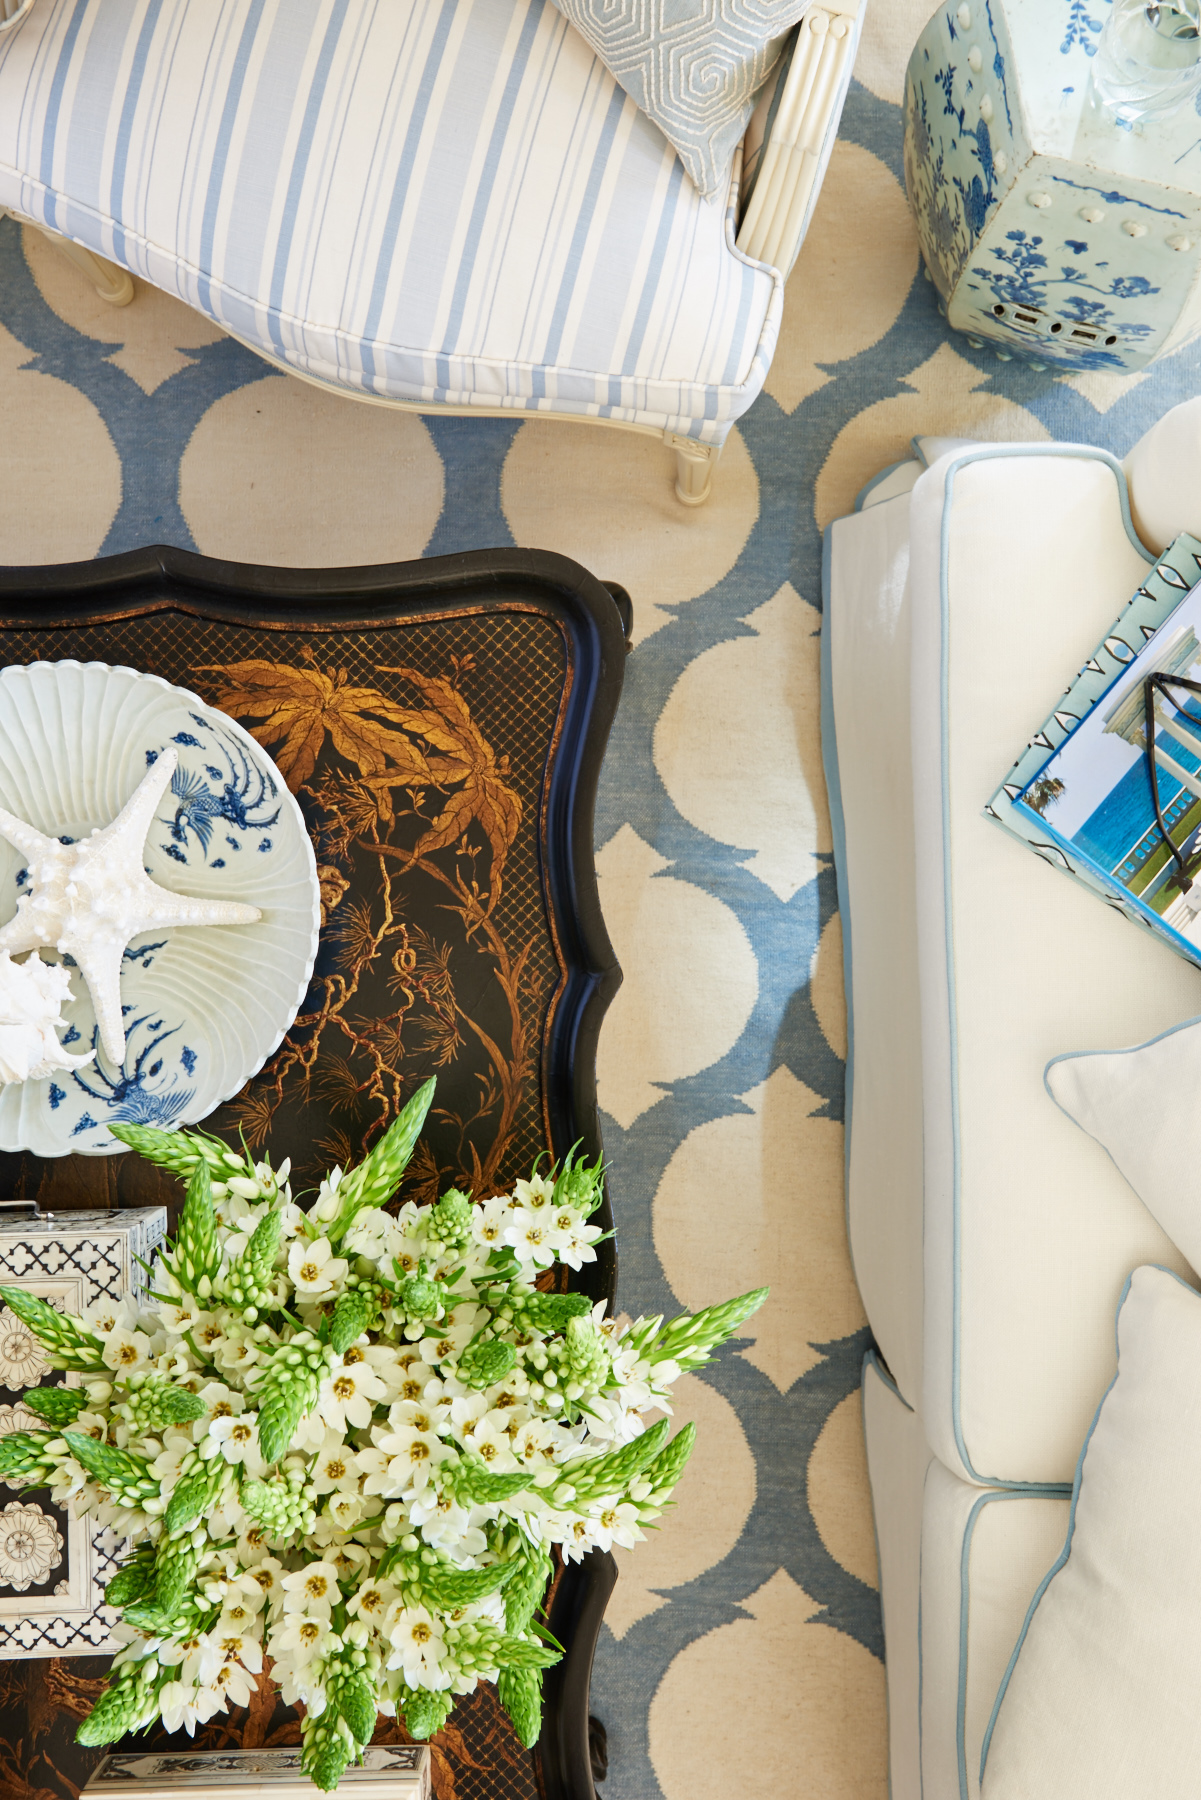 Cream and blue patterns